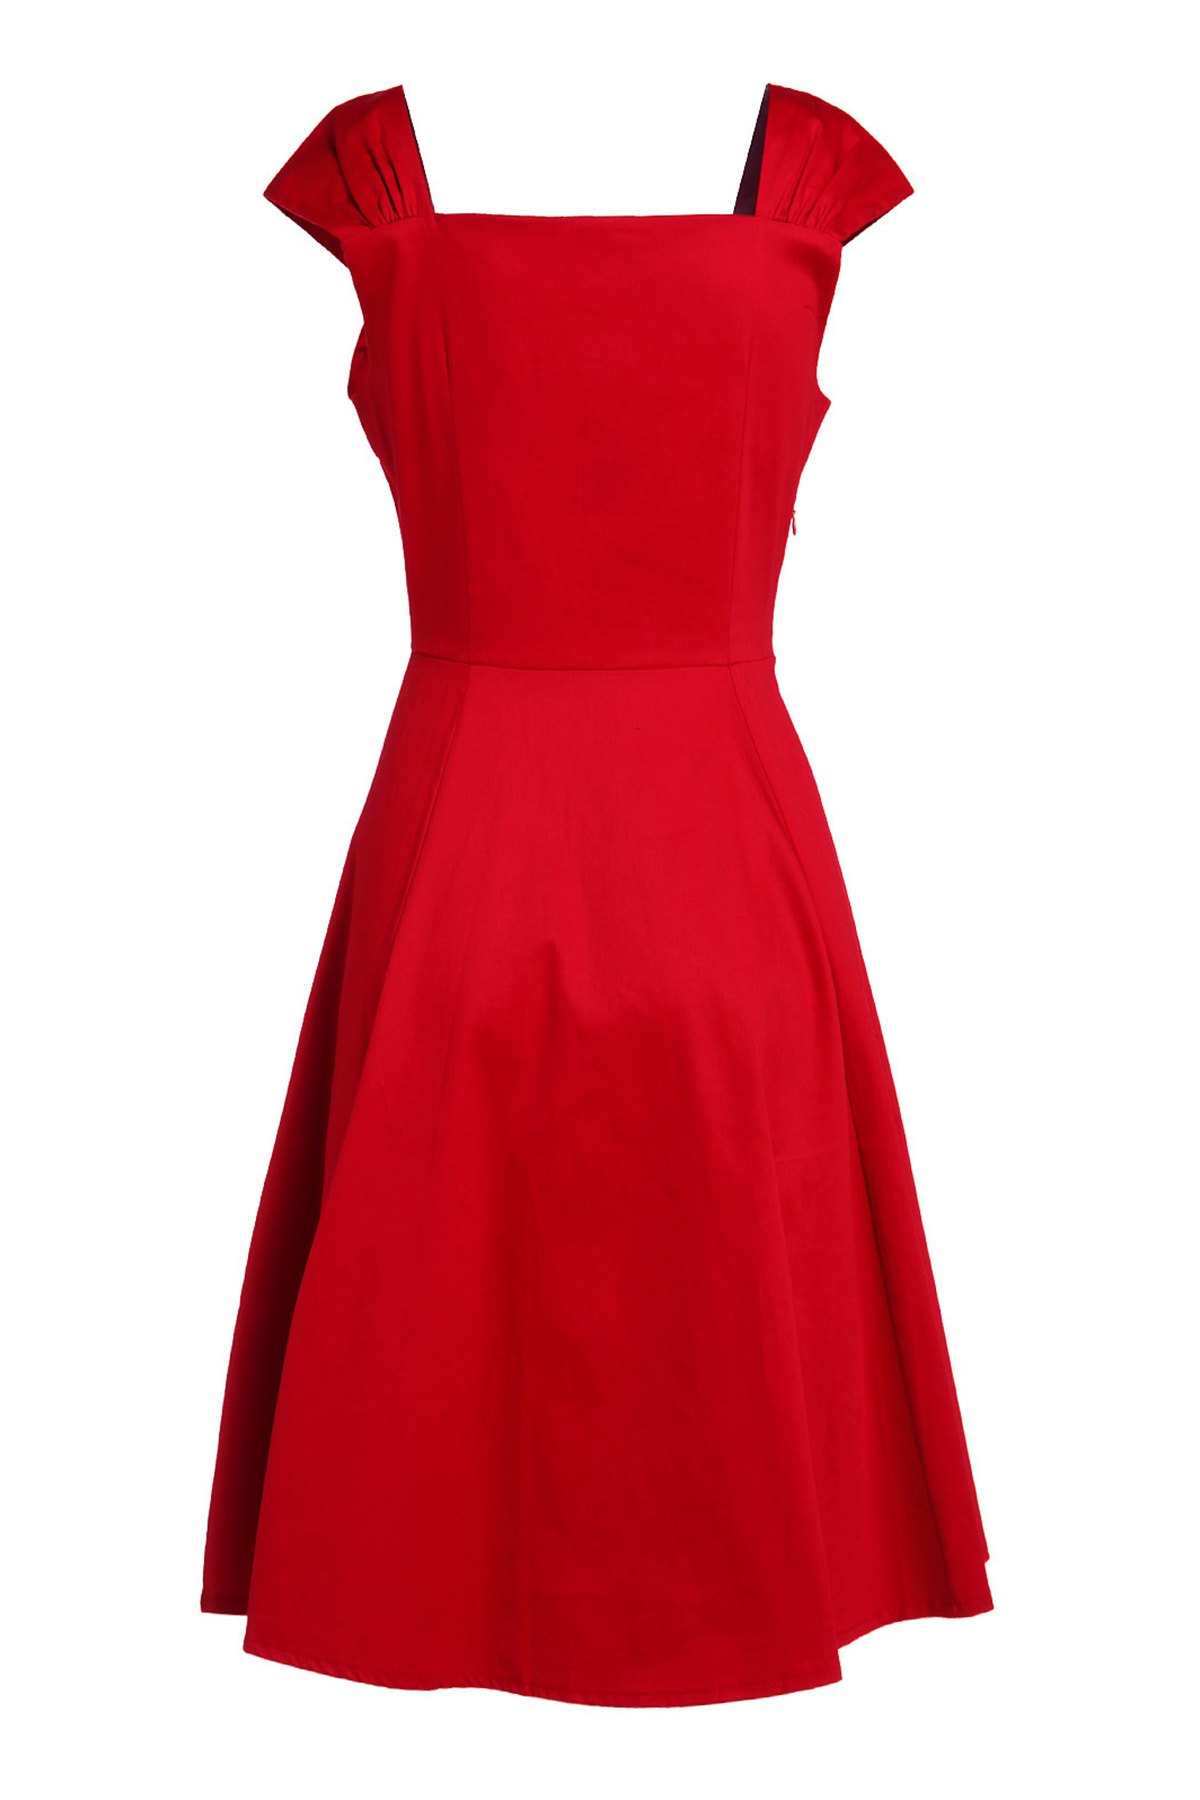 Reversible Solid Color Ball Gown Dress - RED M